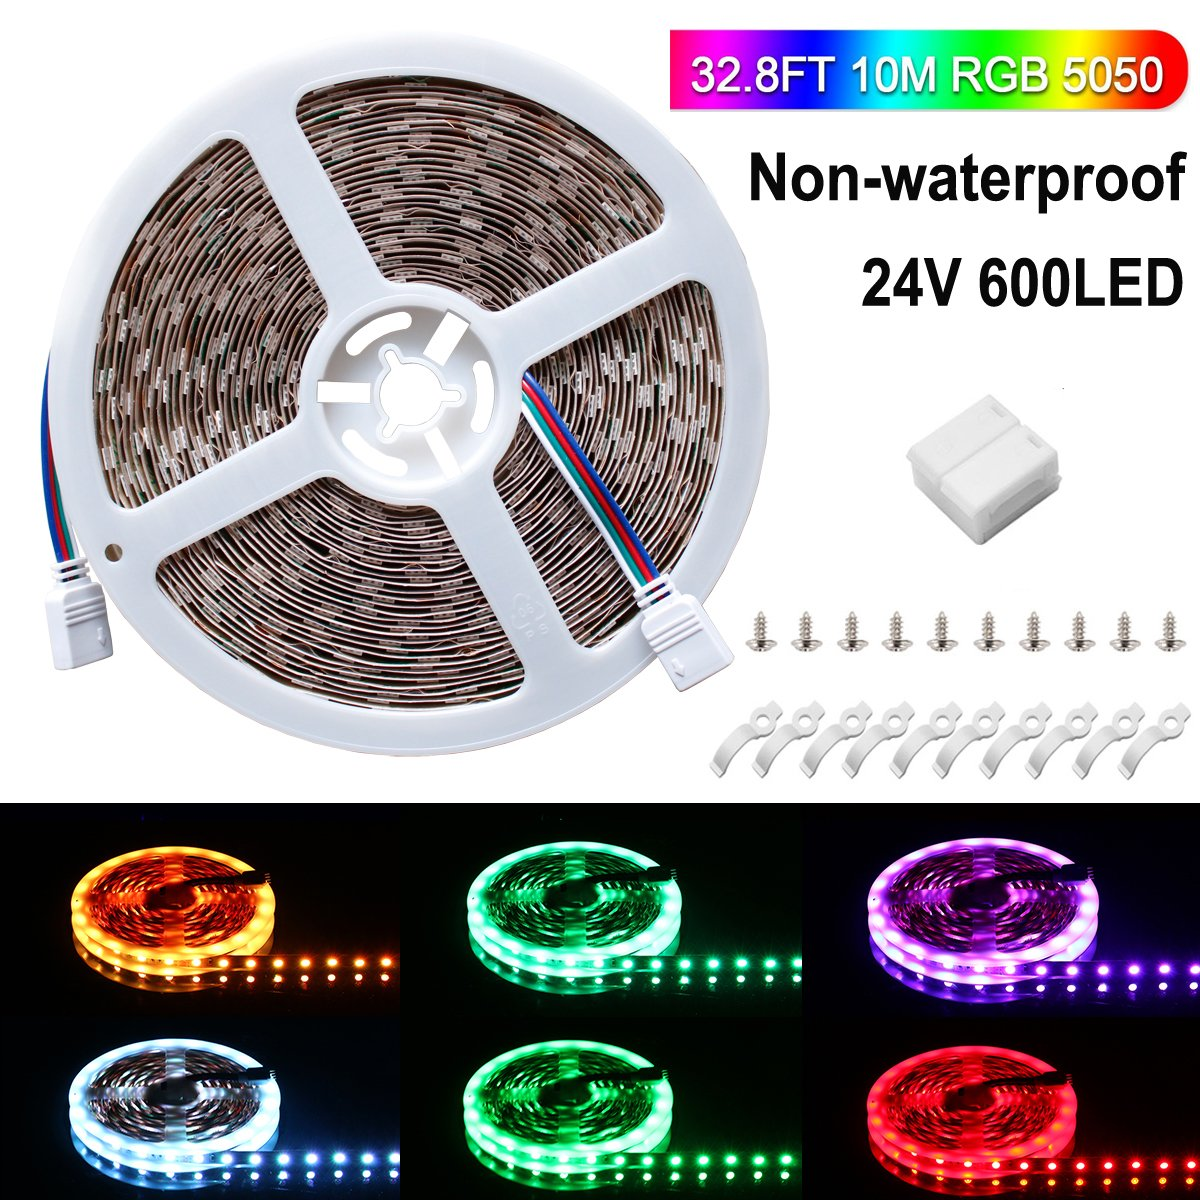 SPARKE LED Strip Light Only, Non-Waterproof 600leds Flexible Color Changing RGB 24V SMD5050 Tape Light, Pack of 32.8ft Strips with Screw Brackets(No Remote and Power Adapter)